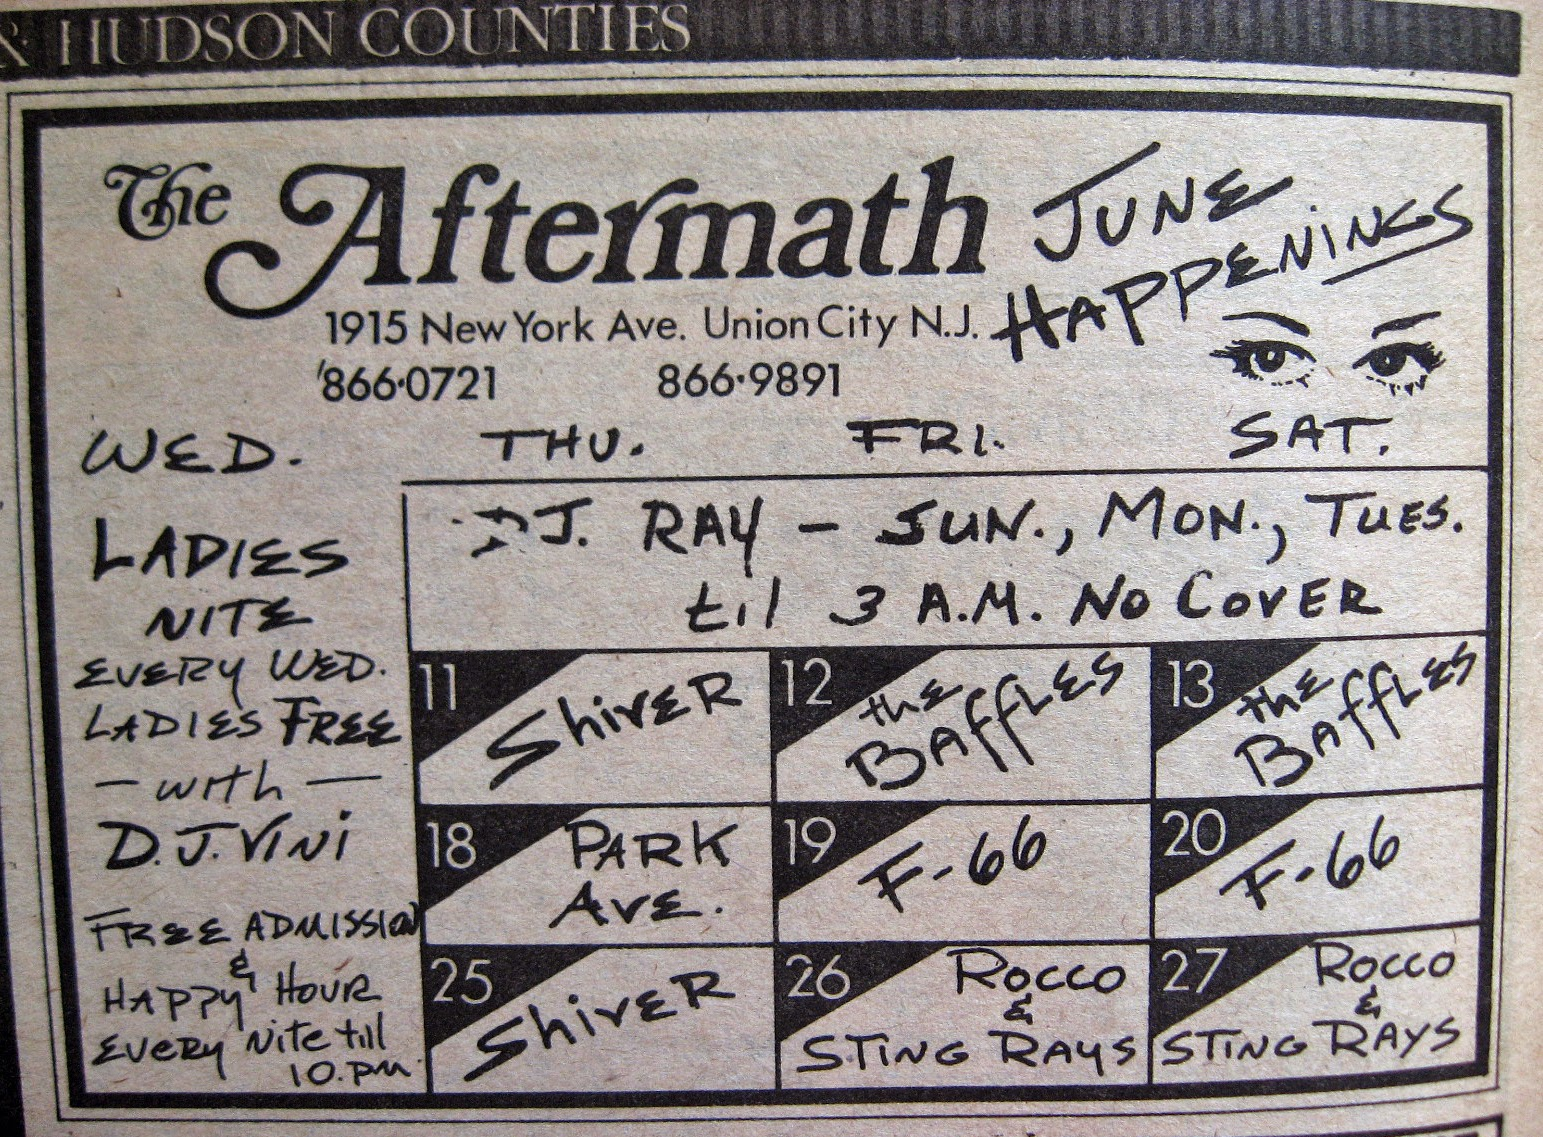 The Aftermath band line up 1981